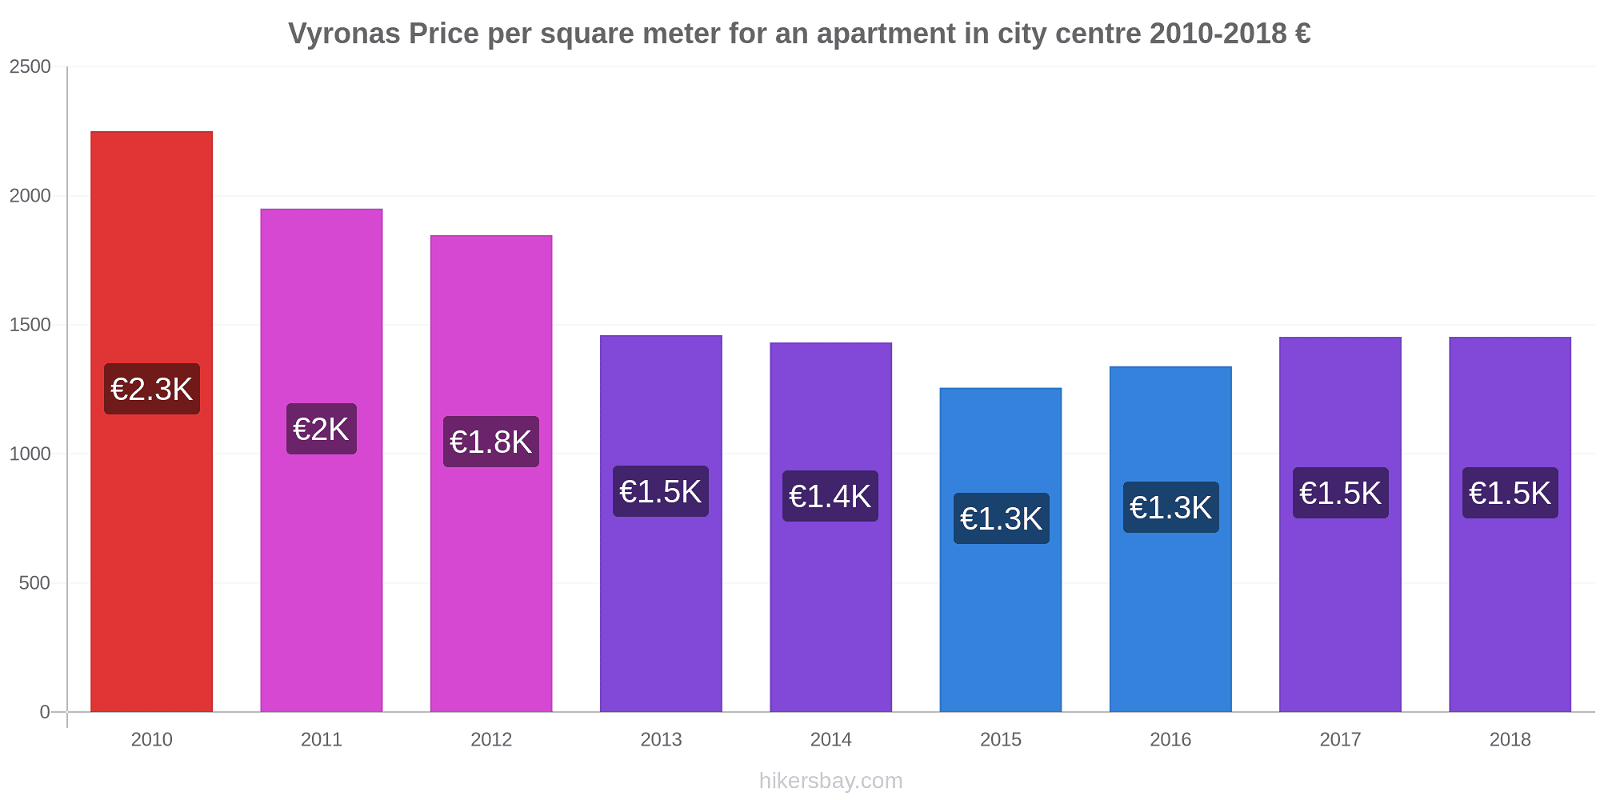 Vyronas price changes Price per square meter for an apartment in city centre hikersbay.com